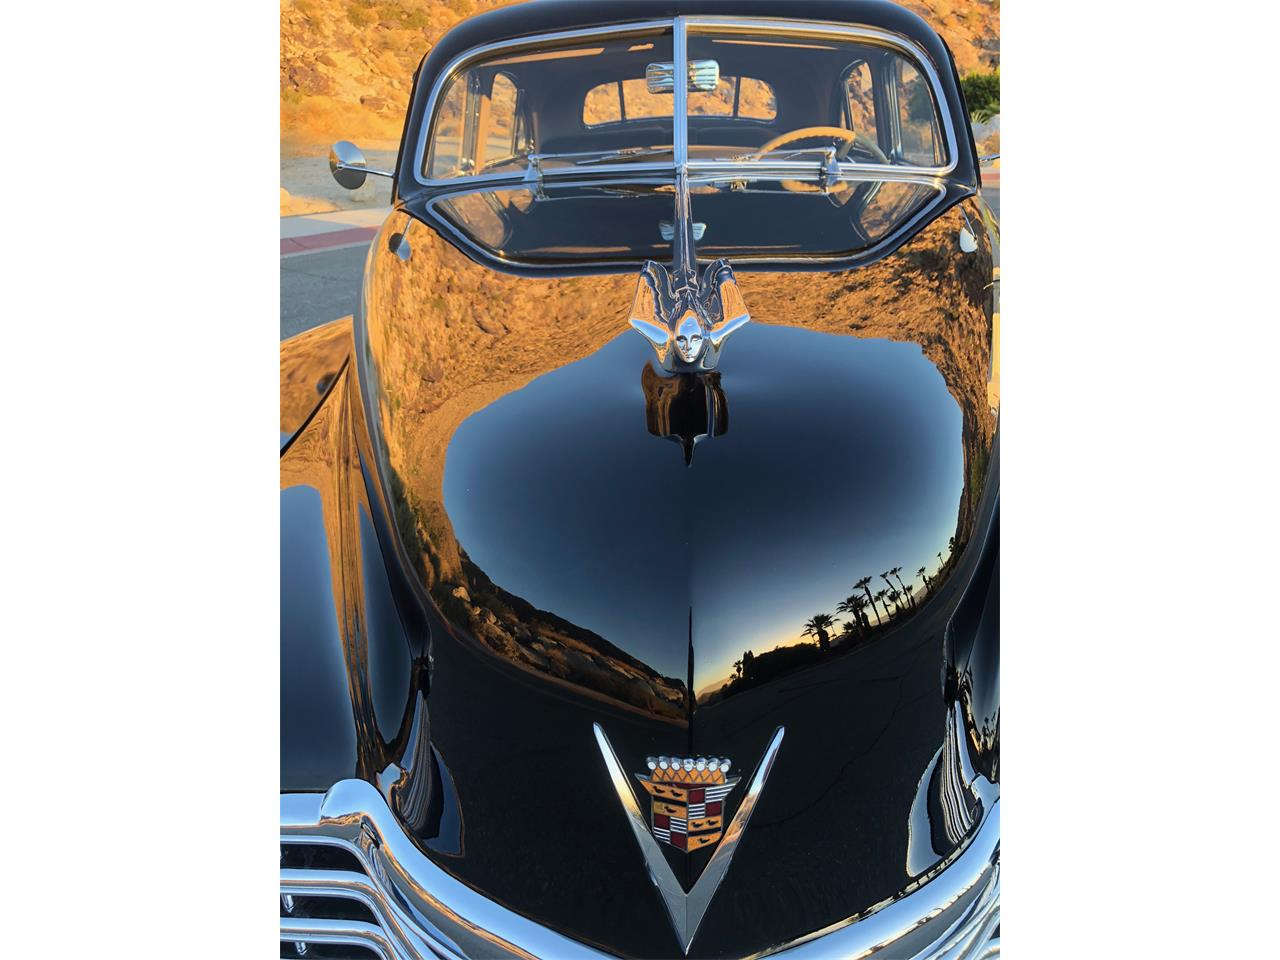 Large Picture of Classic '46 Cadillac Fleetwood 60 Special located in Palm Springs California Offered by a Private Seller - QMKK